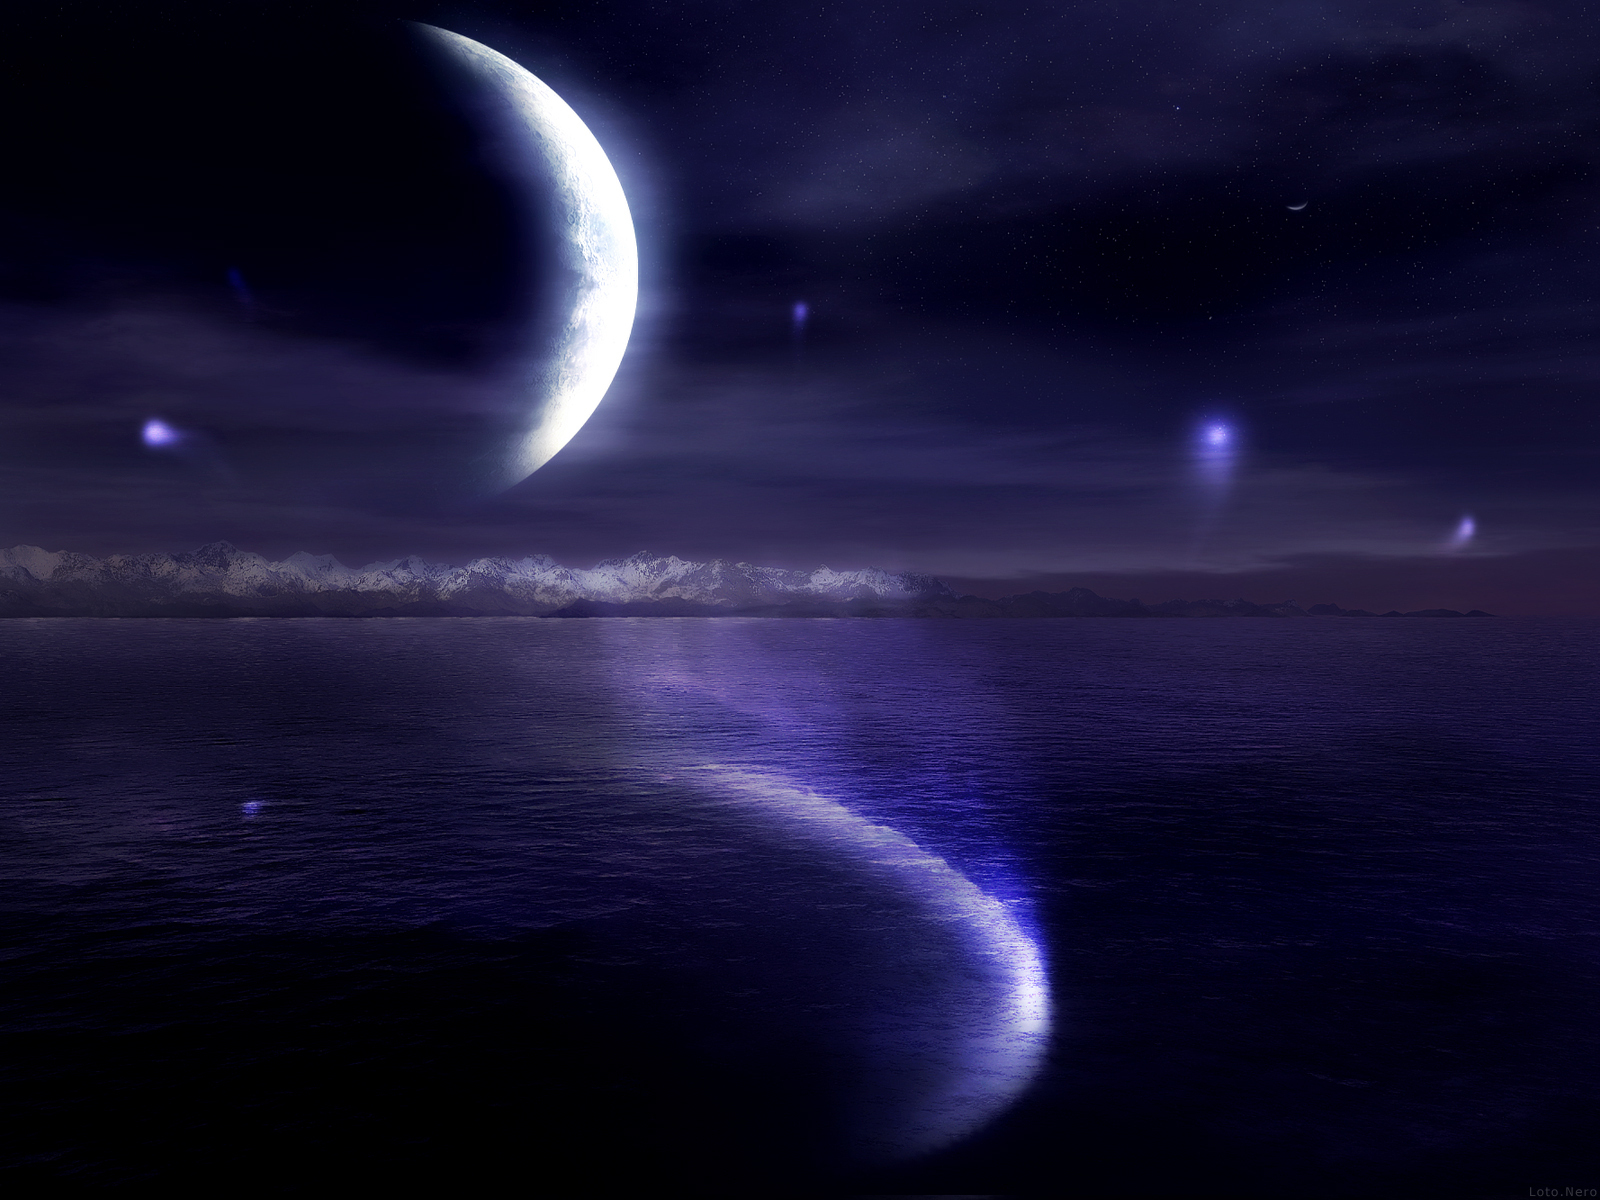 Moon Images MoonLight HD Wallpaper And Background Photos